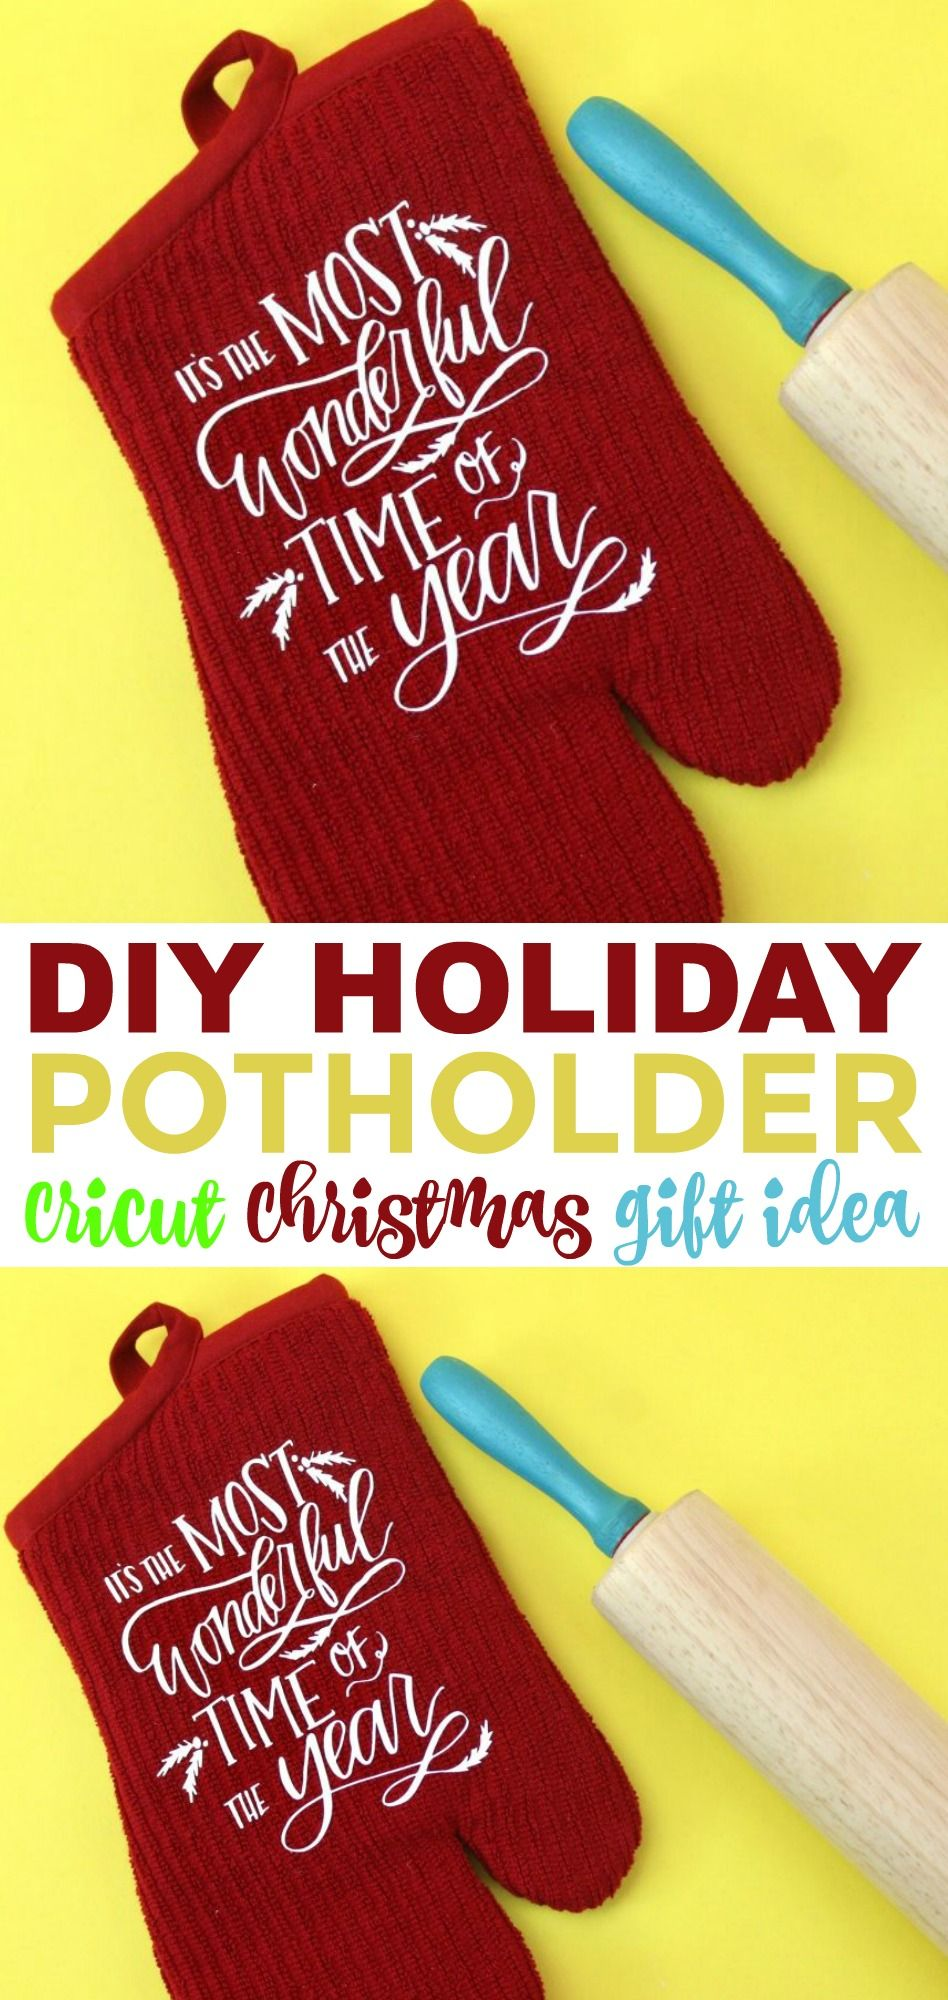 Diy Holiday Potholder Cricut Christmas Gift Idea A Little Craft In Your Day Diy Holiday Diy Cricut Simple Holiday Gifts